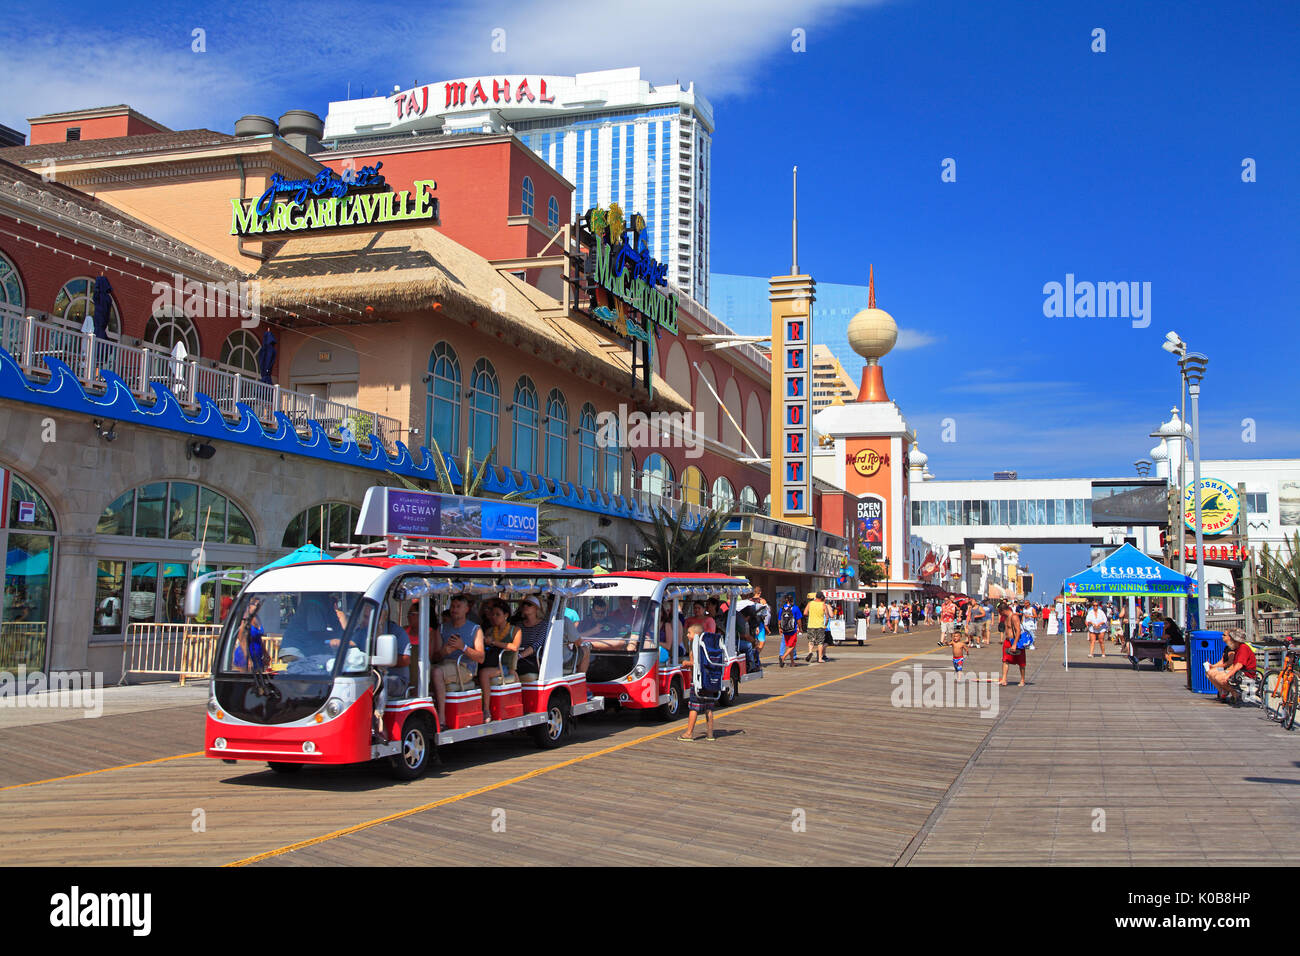 ATLANTIC CITY, NEW JERSEY - AUGUST 19, 2017: Tourists traveling on the boardwalk in Atlantic City. Established in the 1800s as a health resort, today - Stock Image